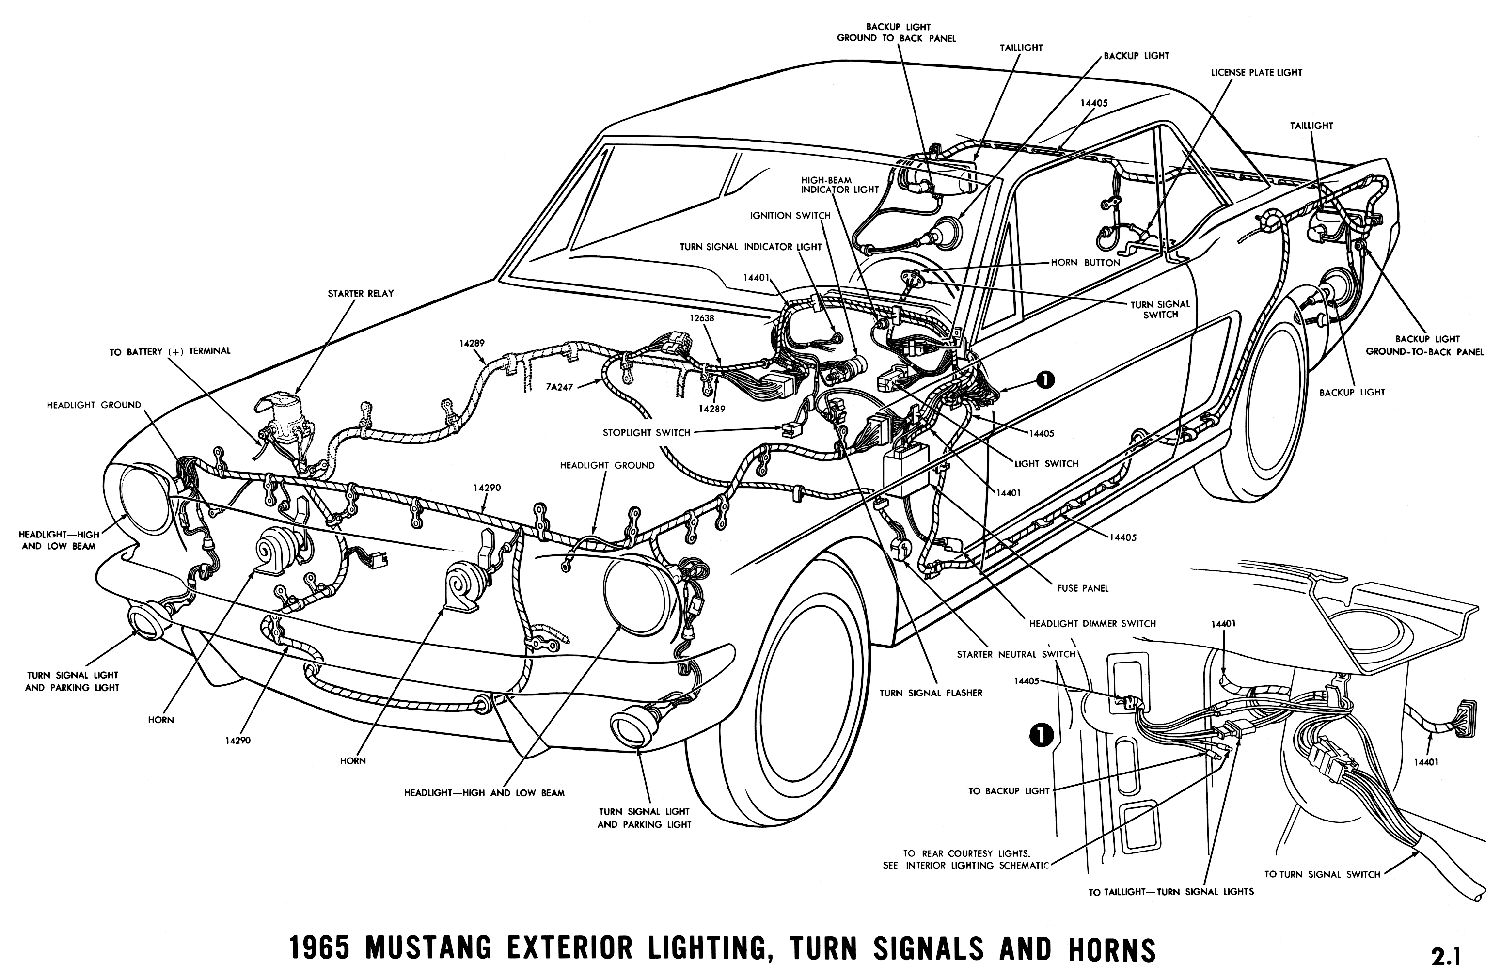 hight resolution of 1965 mustang wiring diagrams average joe restoration 1965 ford mustang solenoid wiring diagram 1965 ford mustang wiring diagram